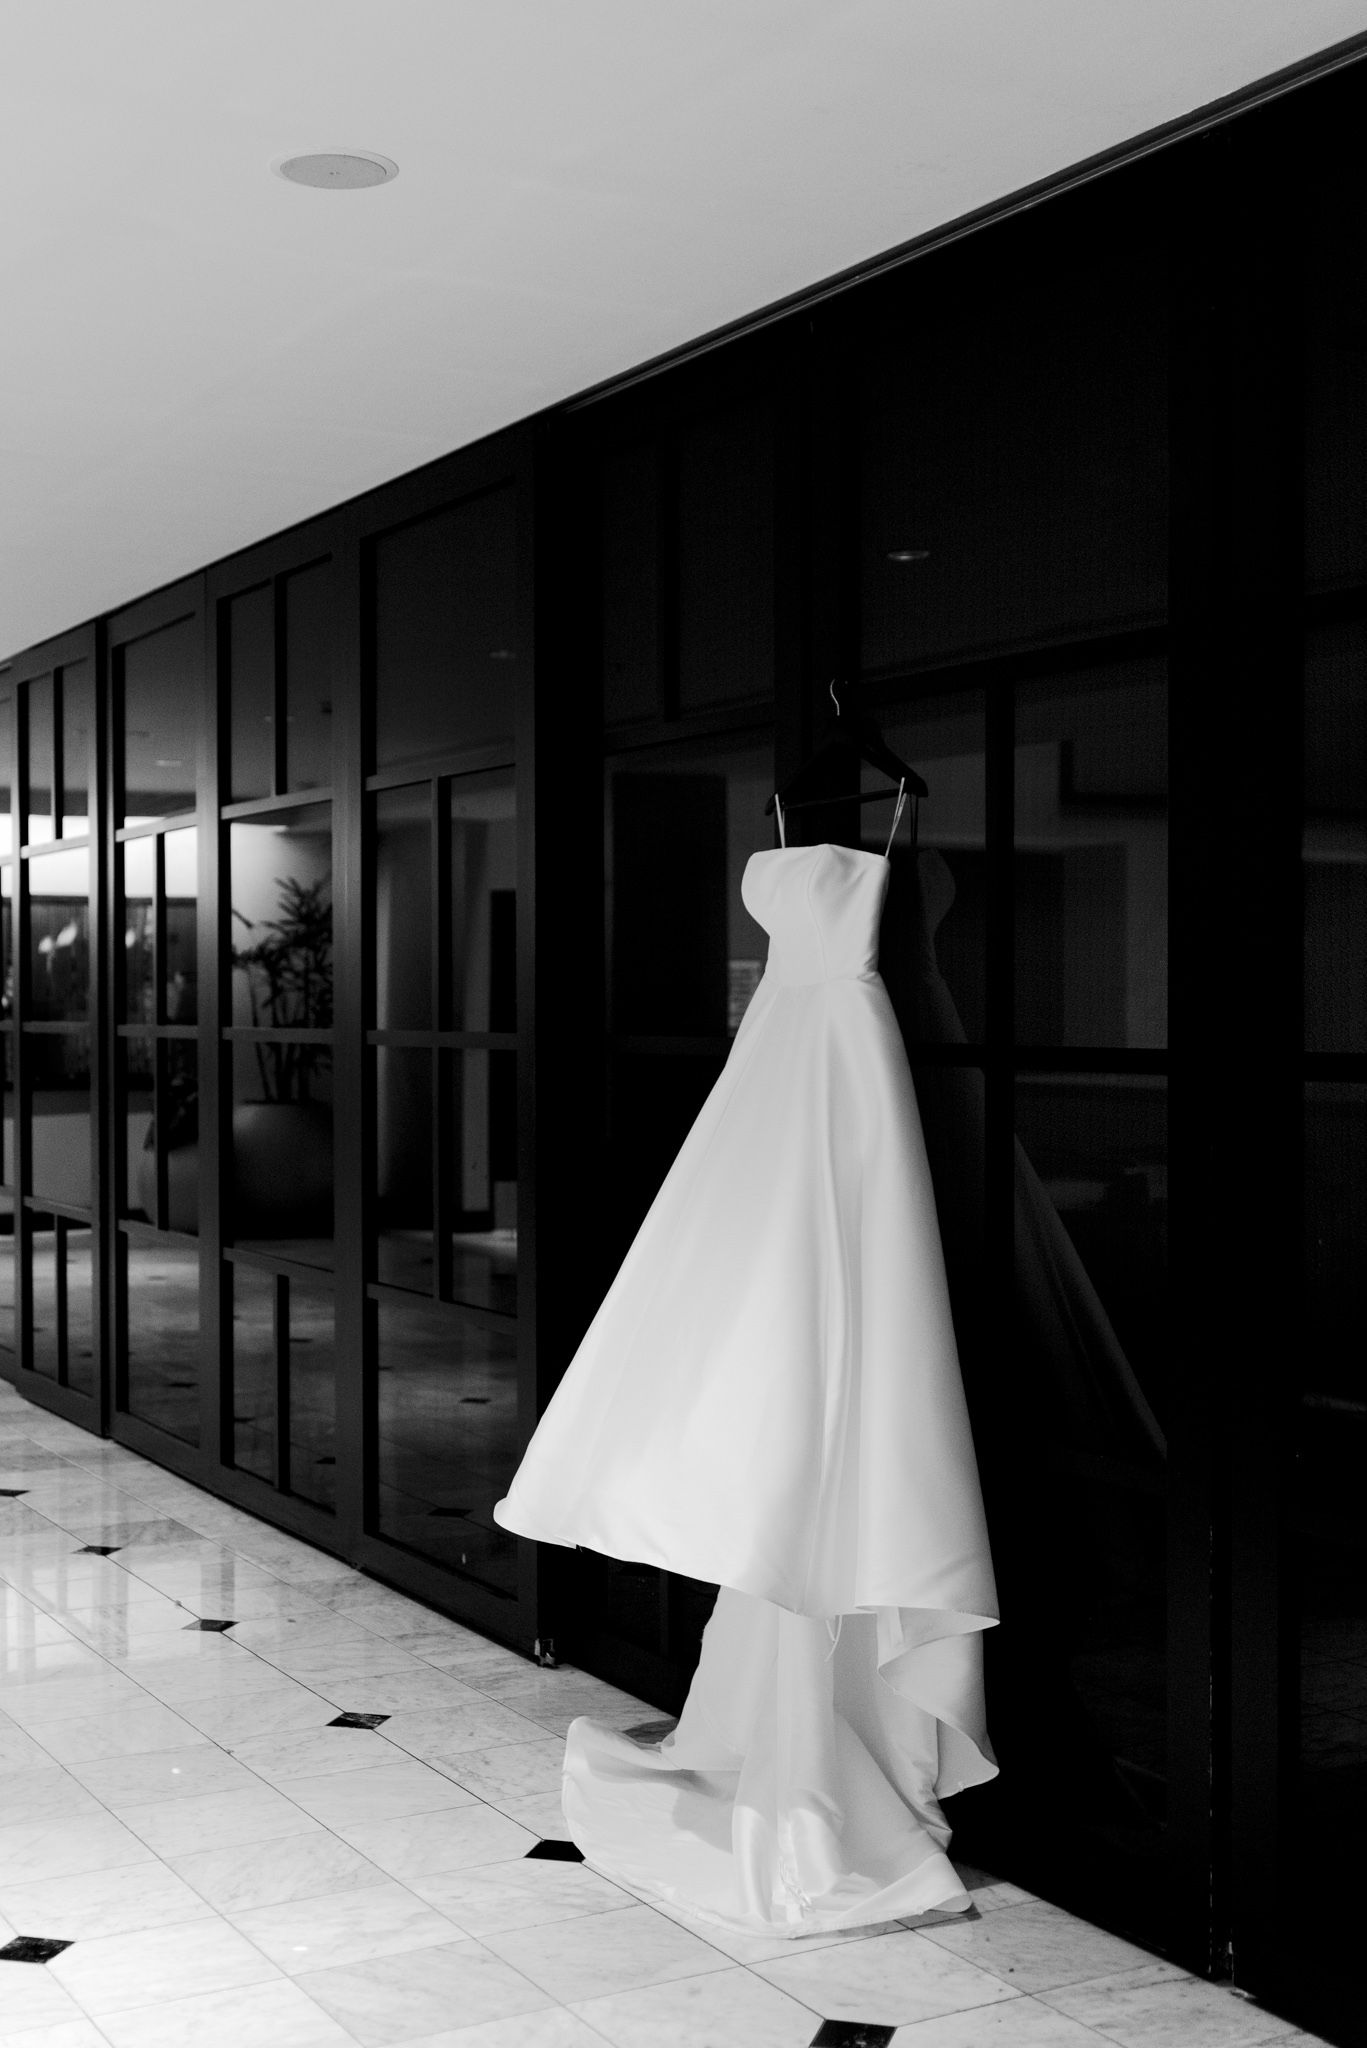 strapless wedding dress hanging on black doors for downtown St. Louis wedding